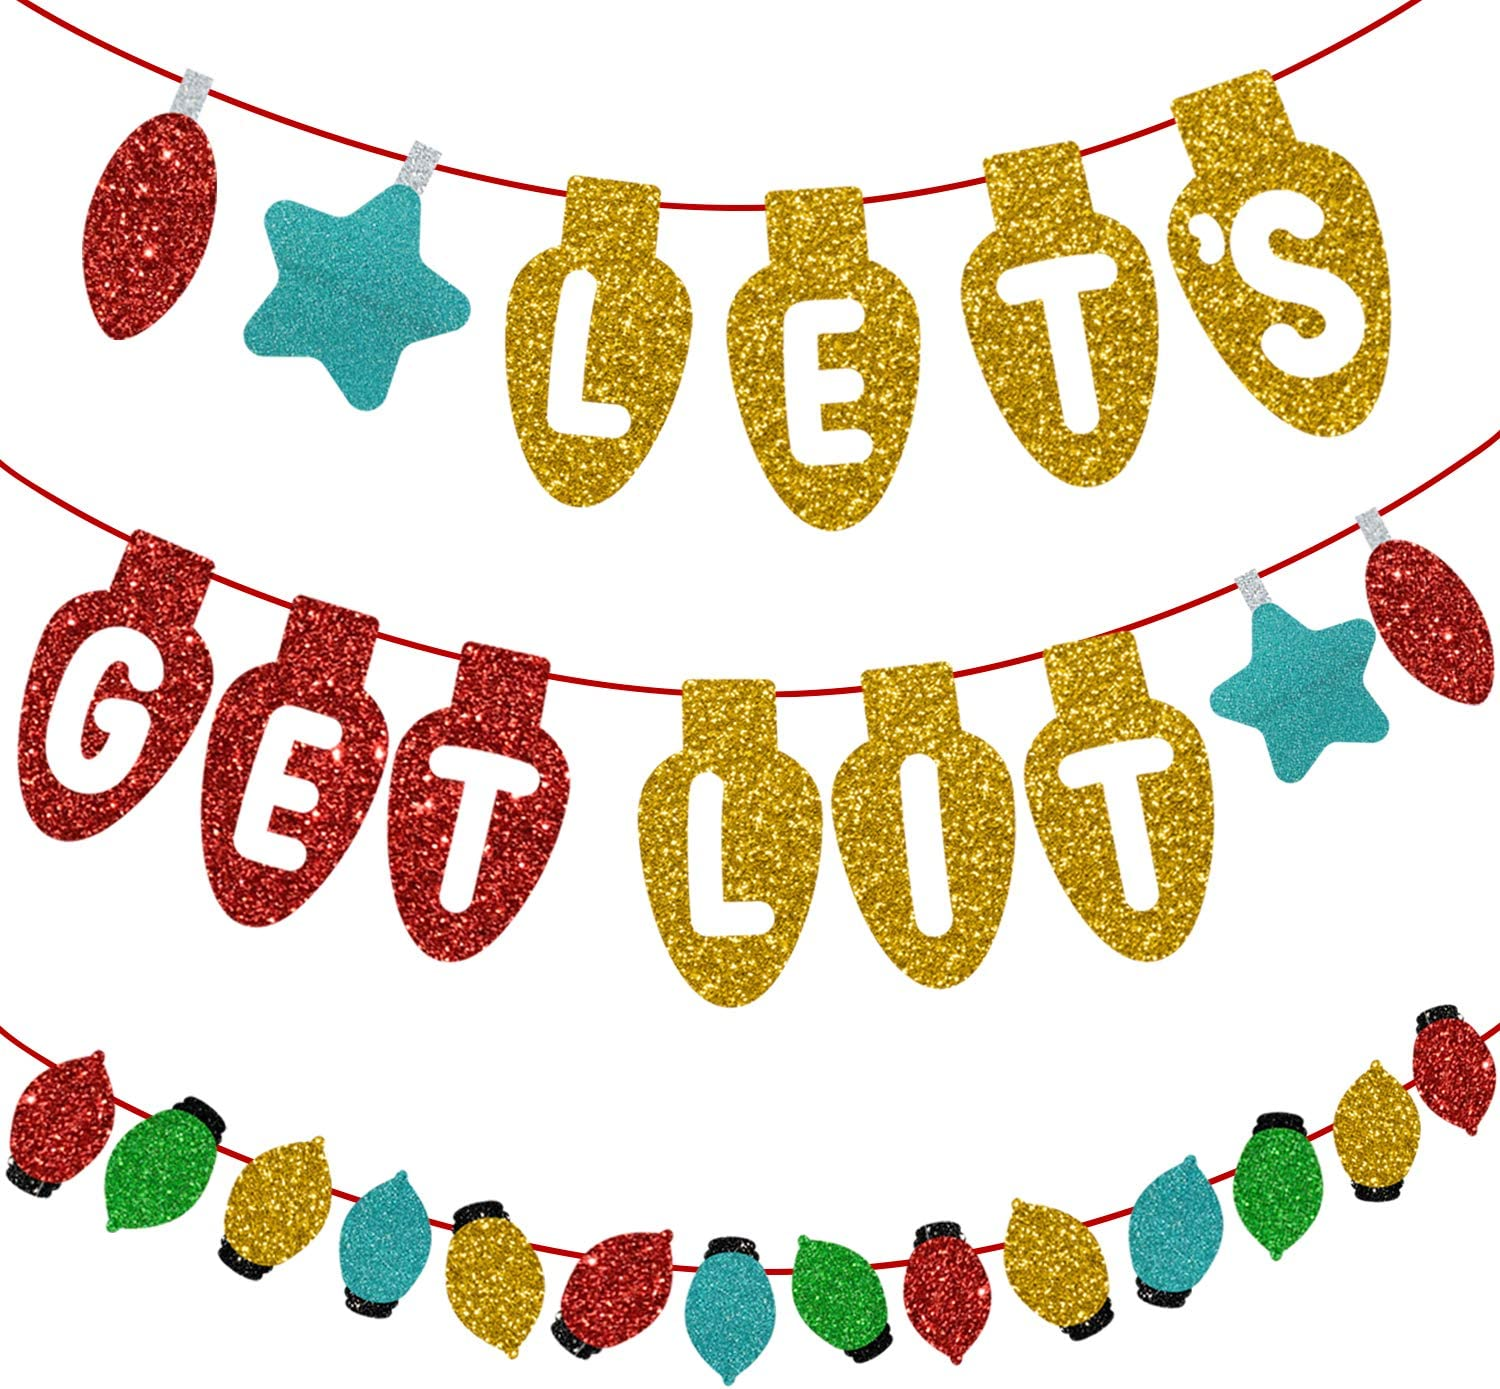 Lets get Lit Glittery Christmas Banner Kit + Xmas Colorful lights Bunting Garland Sign, Perfect Holiday Decor, Happy Friendmas Hanging Party Supplies, Merry Winter Theme Natale Season Party Favors